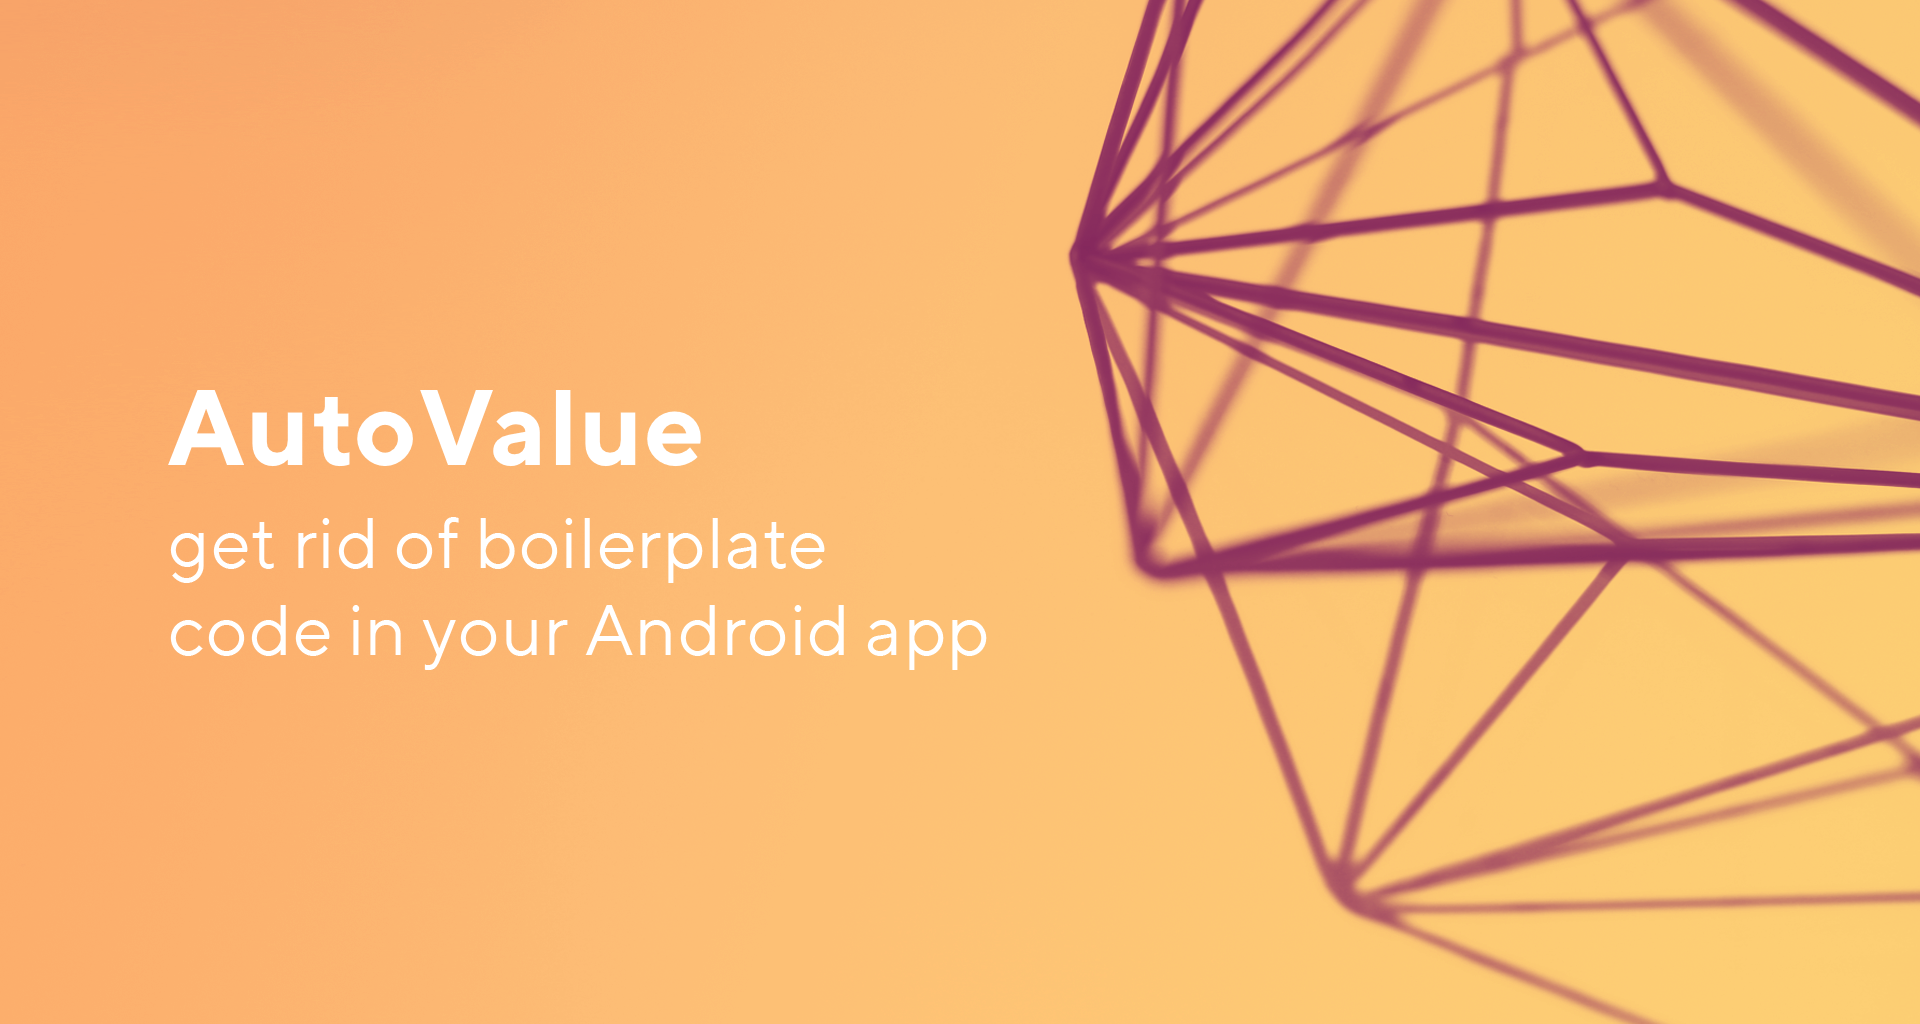 Autovalue - get rid of boilerplate code in your android app